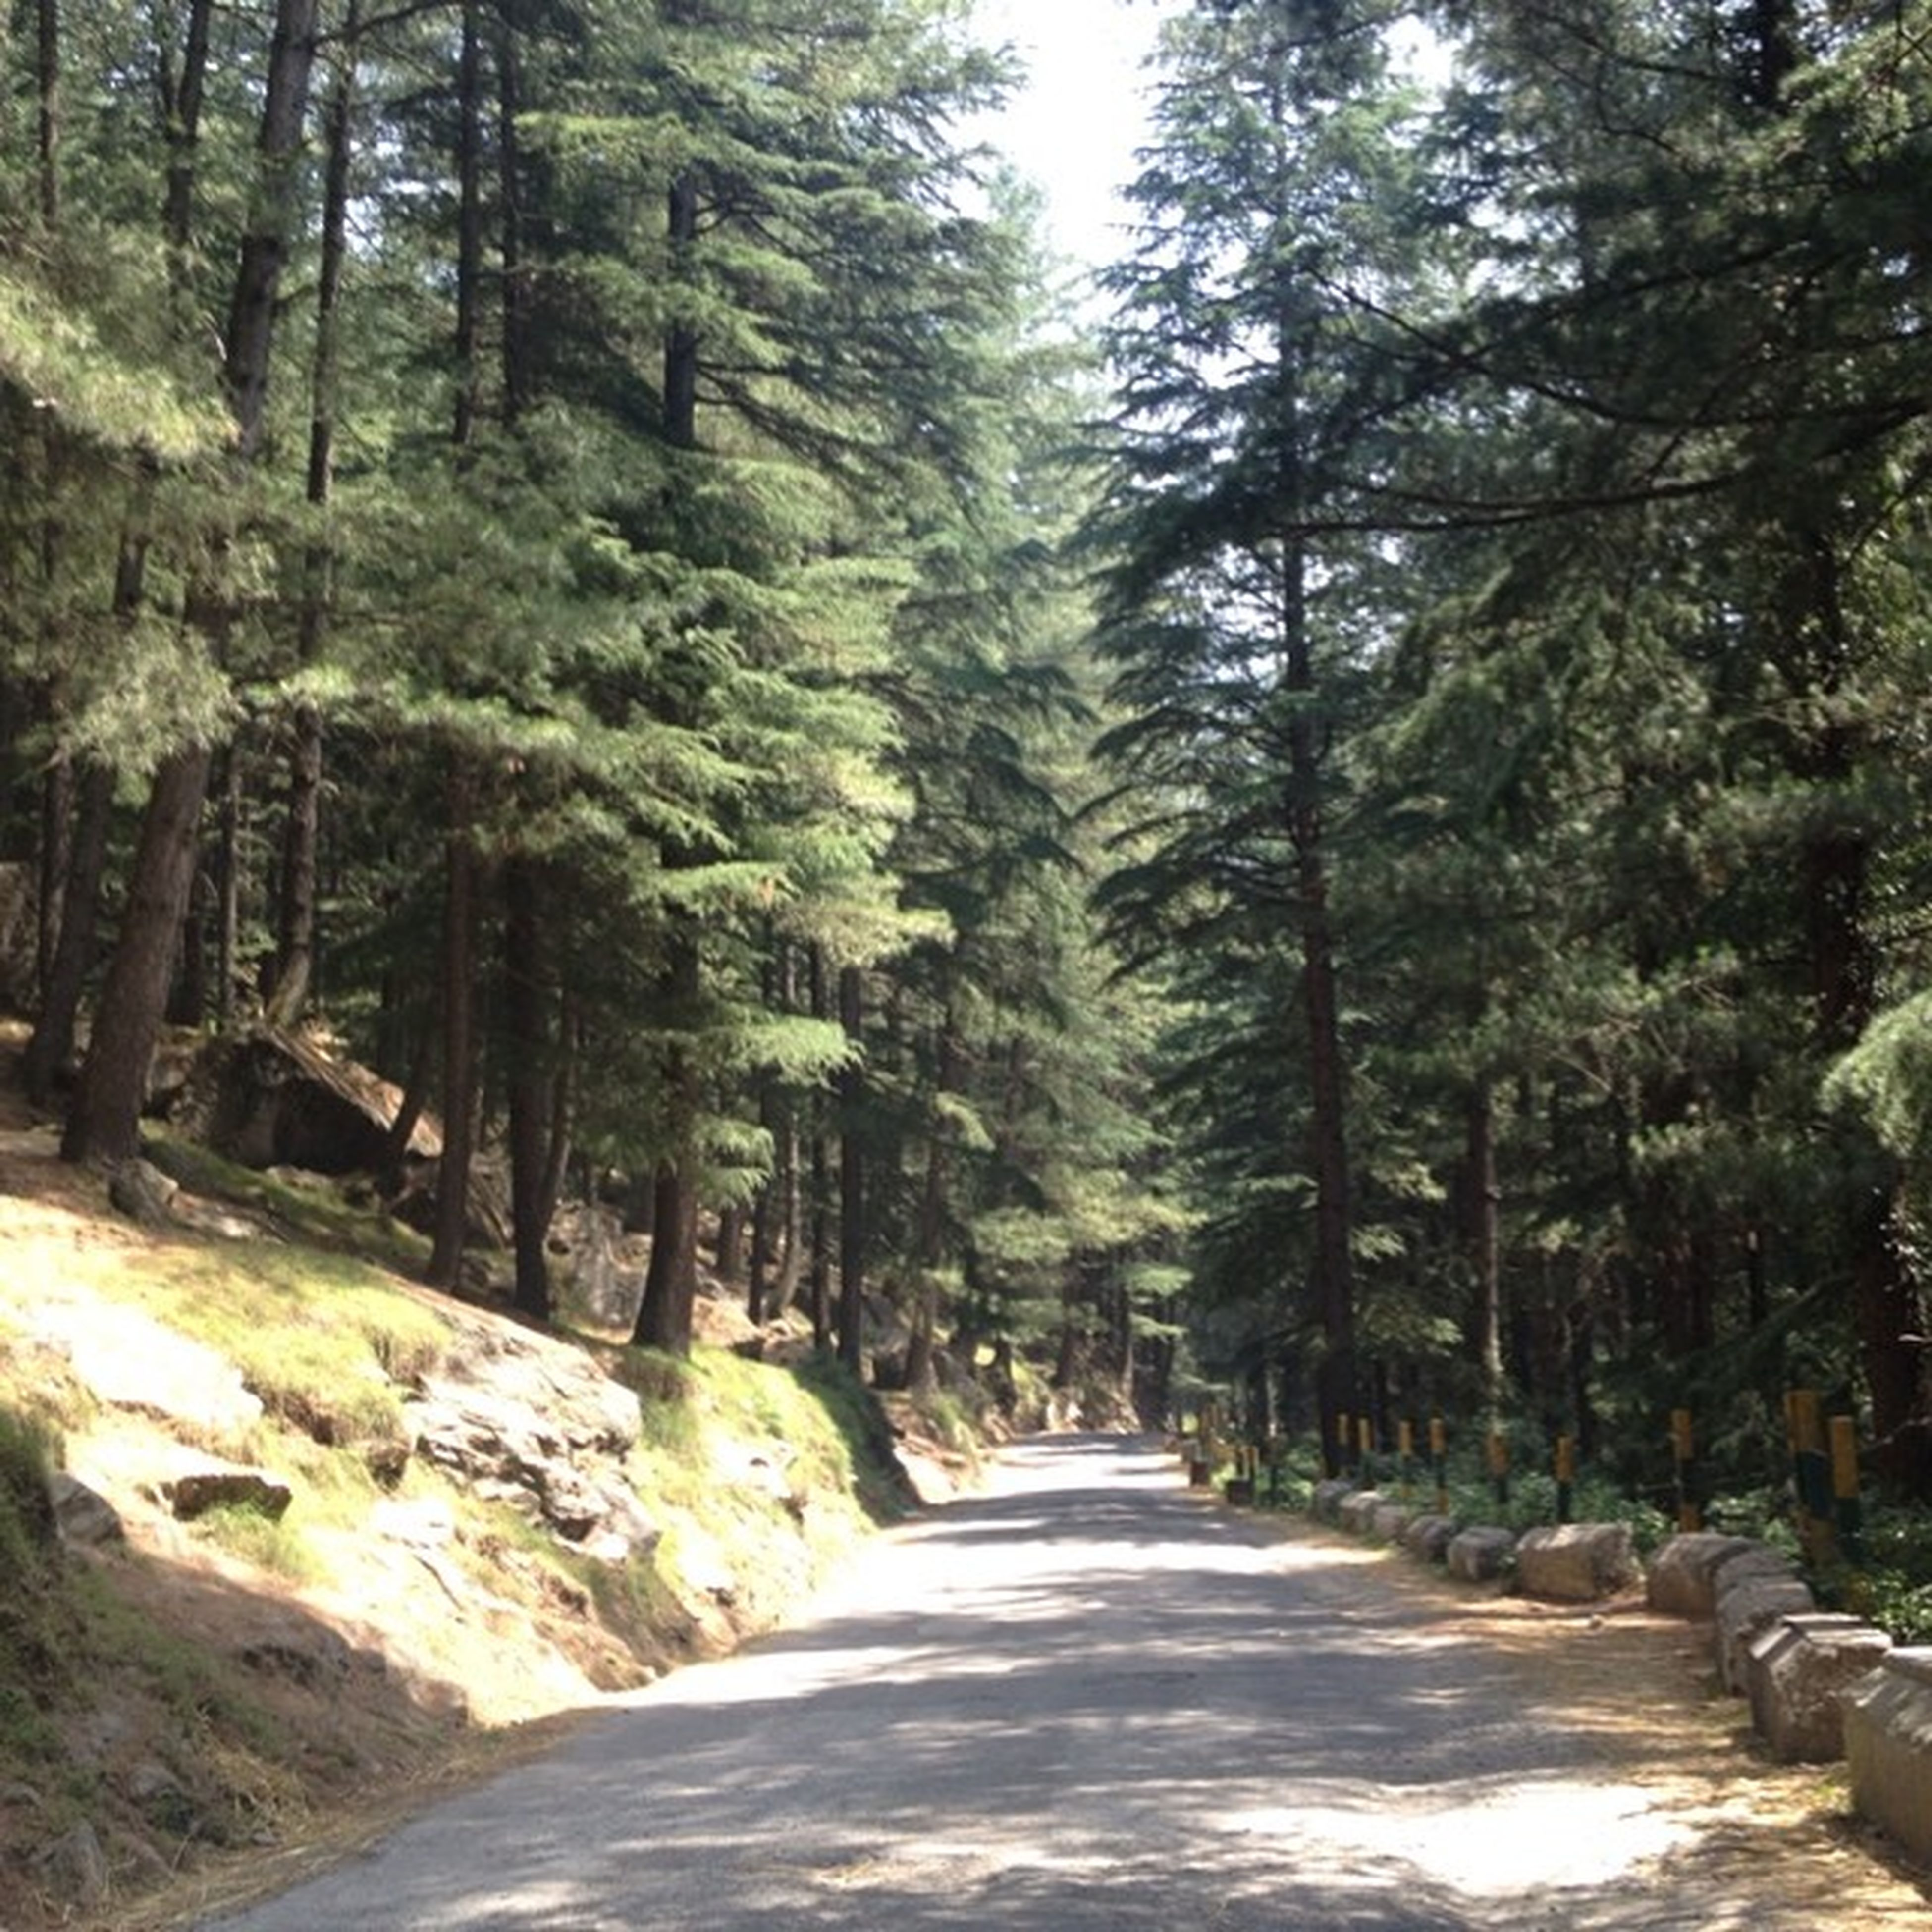 the way forward, tree, diminishing perspective, vanishing point, tranquility, forest, road, tranquil scene, nature, beauty in nature, scenics, narrow, growth, footpath, transportation, long, empty road, empty, day, tree trunk